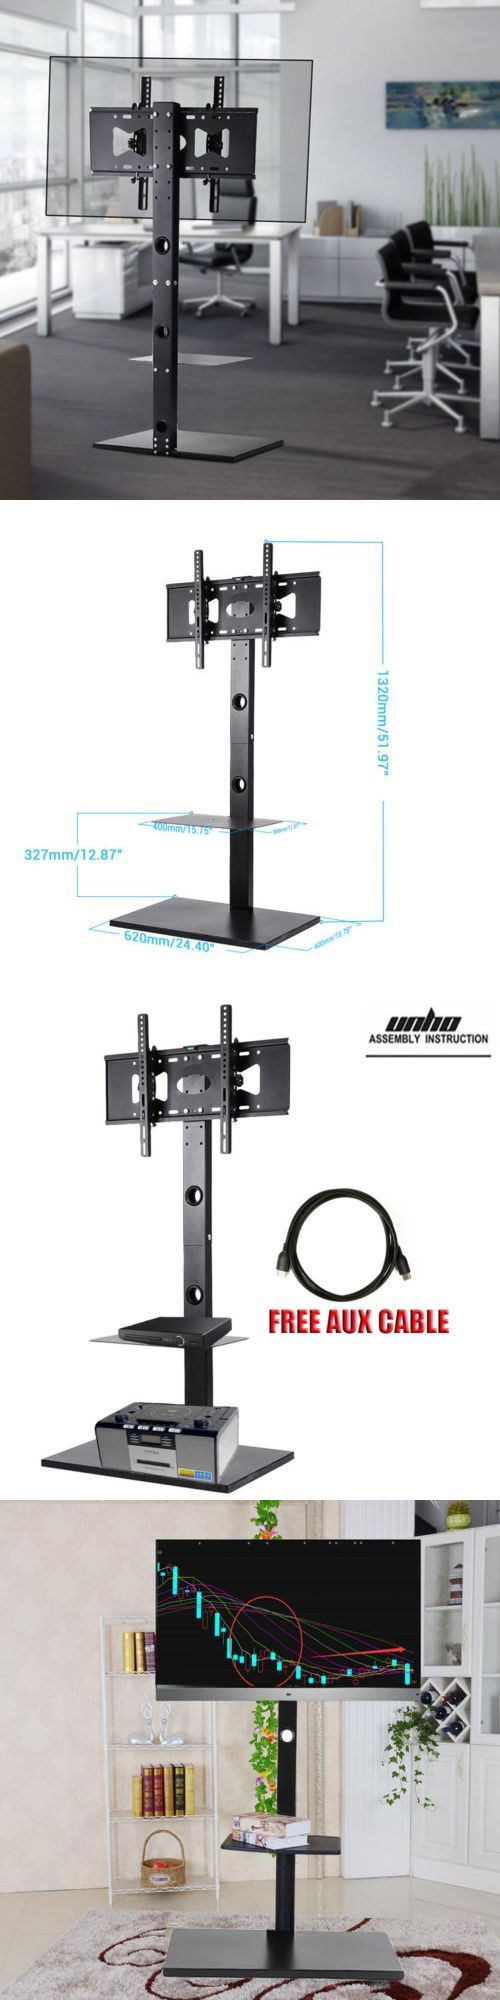 Tv mounts and brackets heavy duty swivel floor stand tv mount and